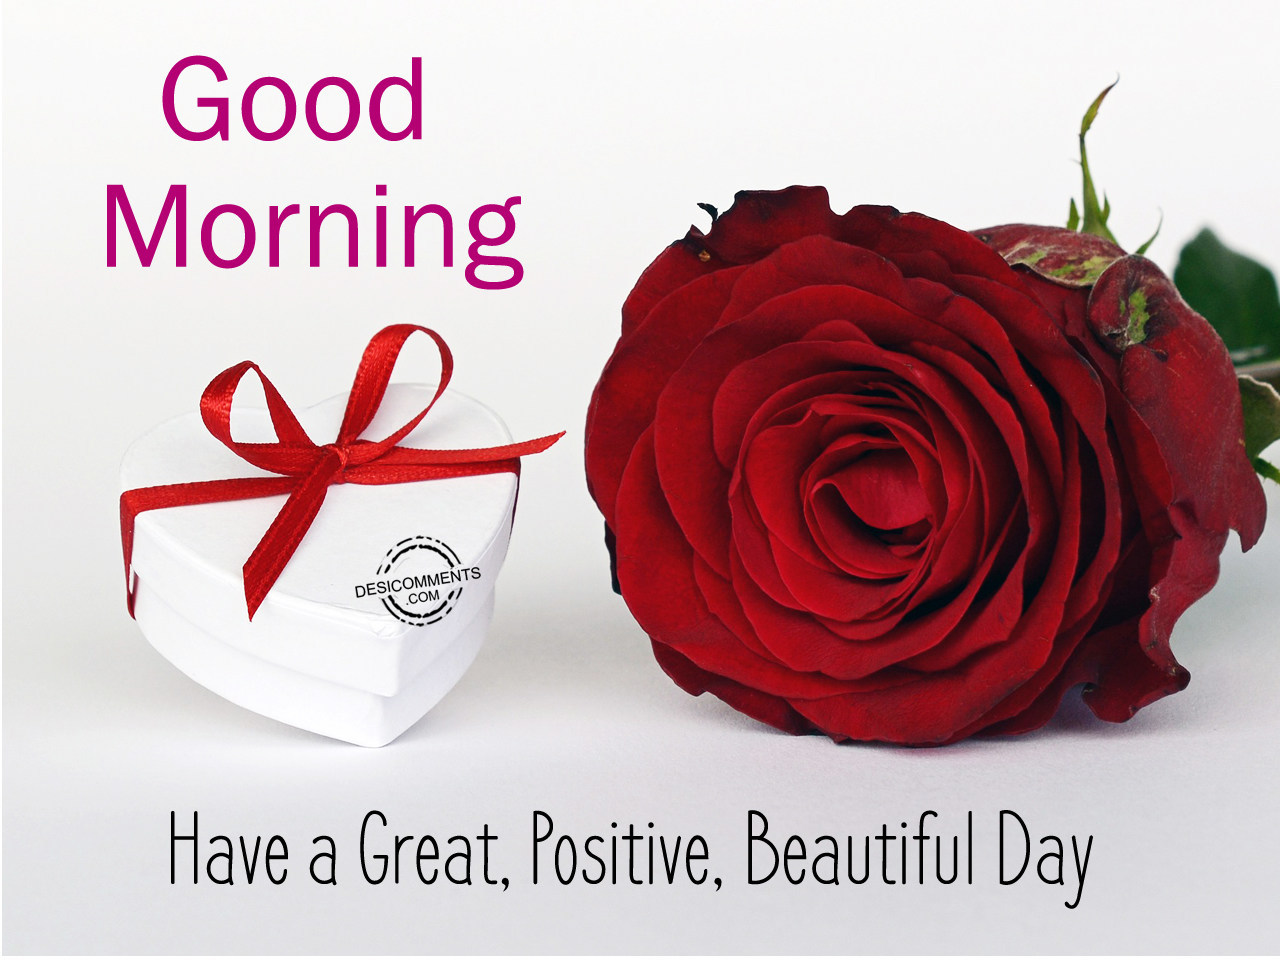 Good Morning Beautiful Have A Good Day : Good morning have a great postive beautiful day